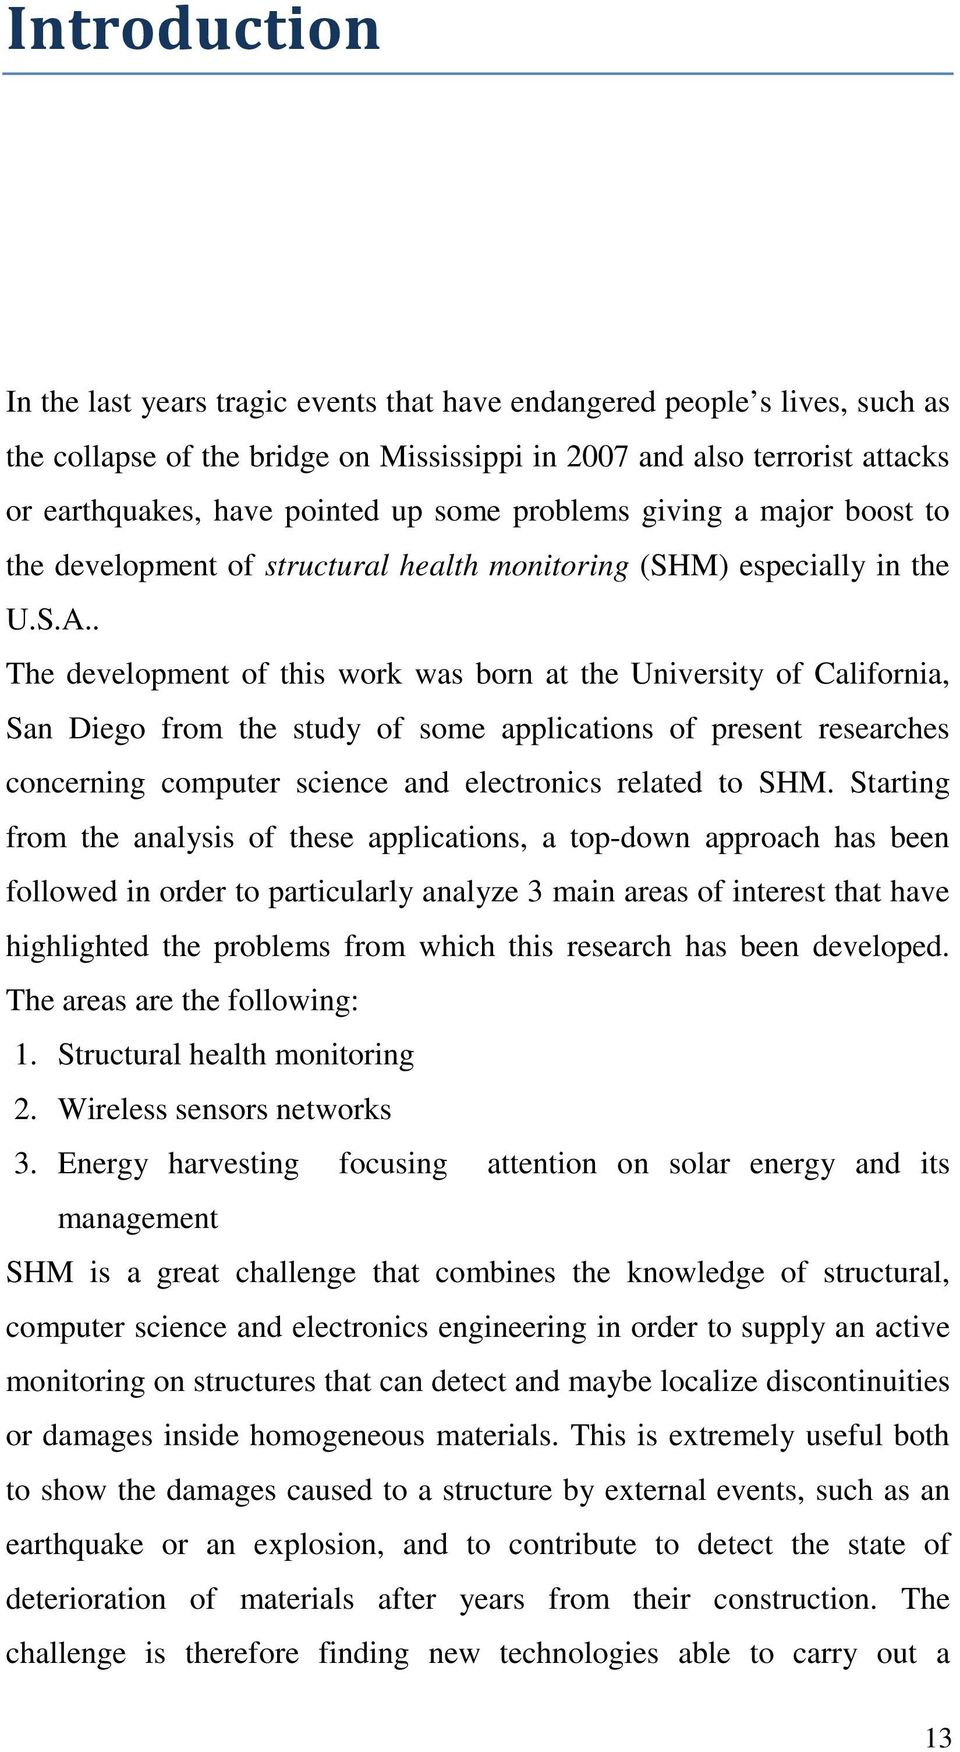 . The development of this work was born at the University of California, San Diego from the study of some applications of present researches concerning computer science and electronics related to SHM.